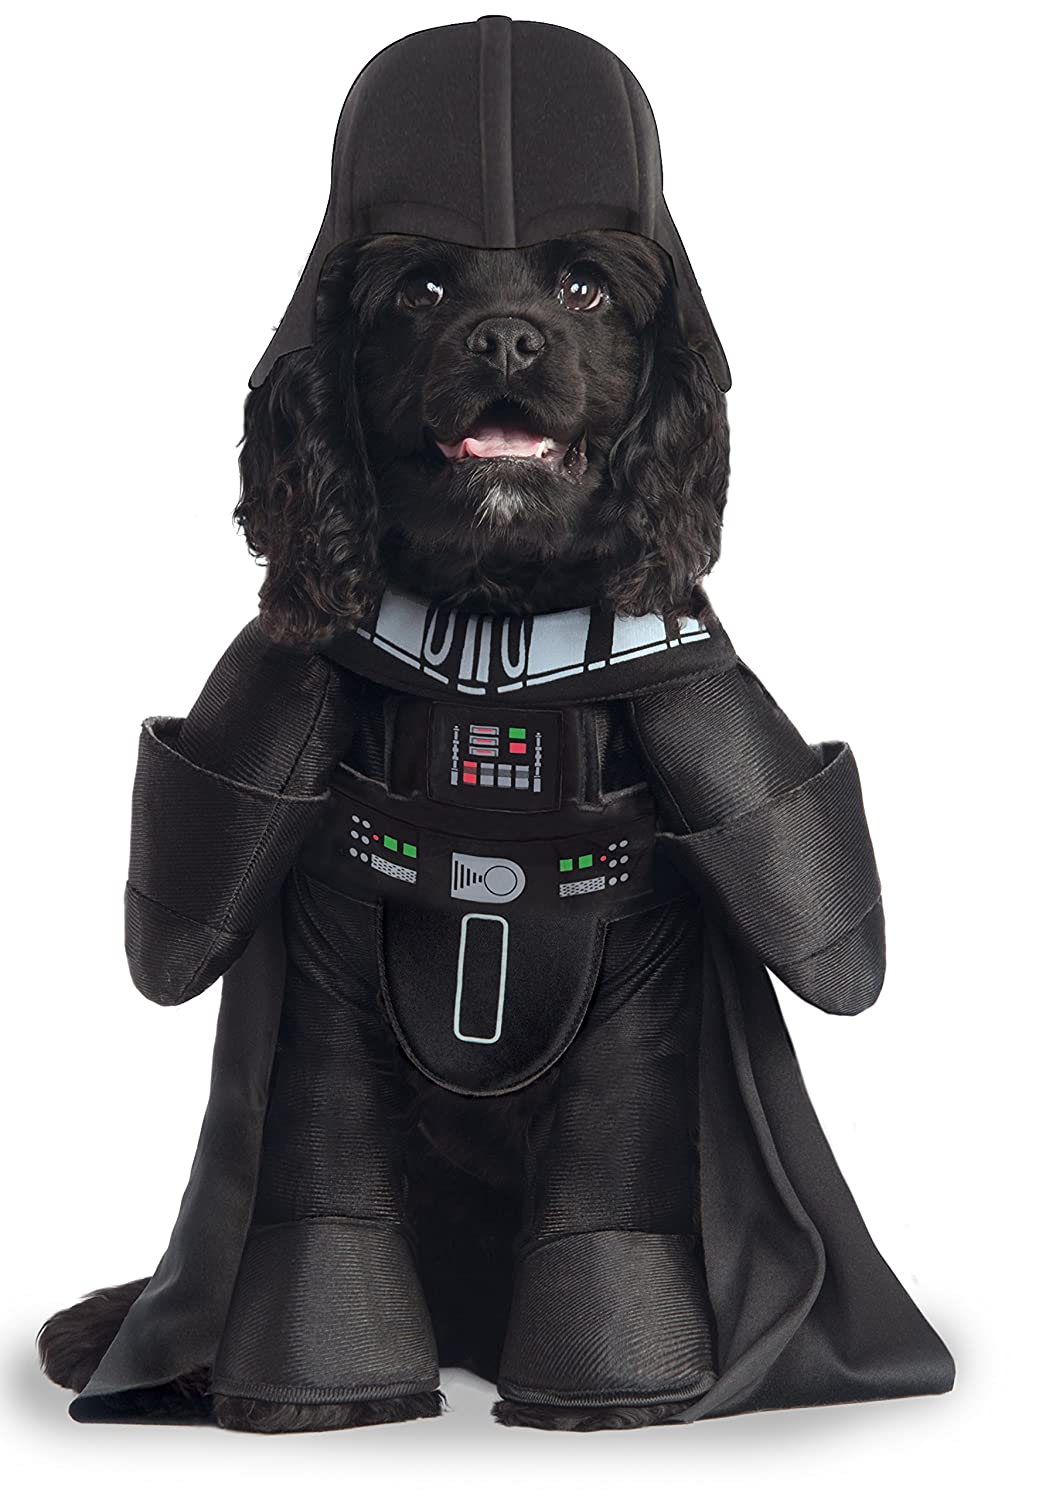 Rubies Costume Star Wars Darth Vader Pet Costume